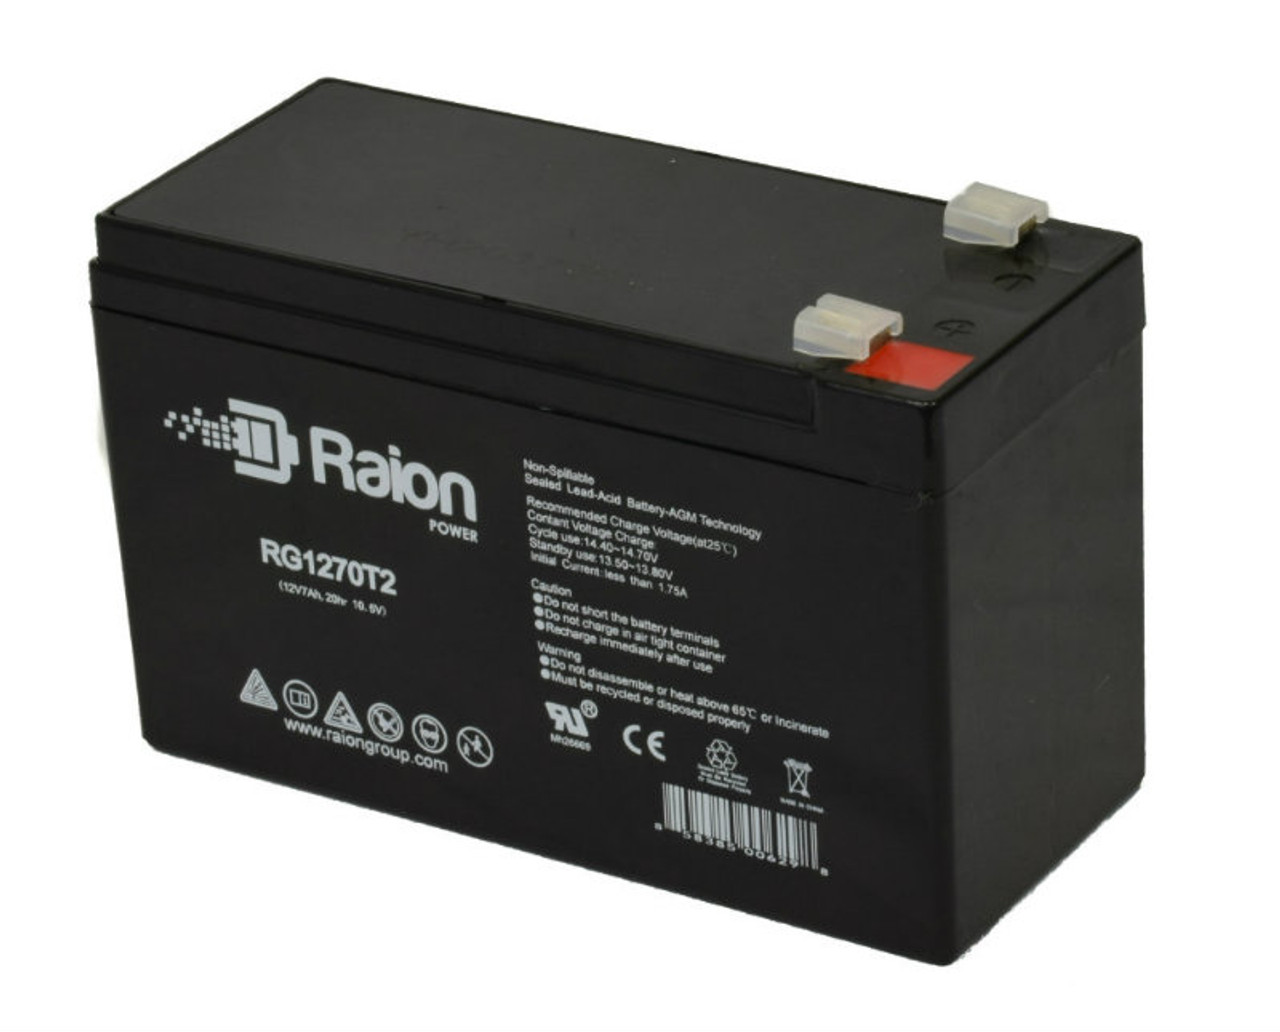 Raion Power RG1270T1 Replacement Battery for Newmox FNC-1272